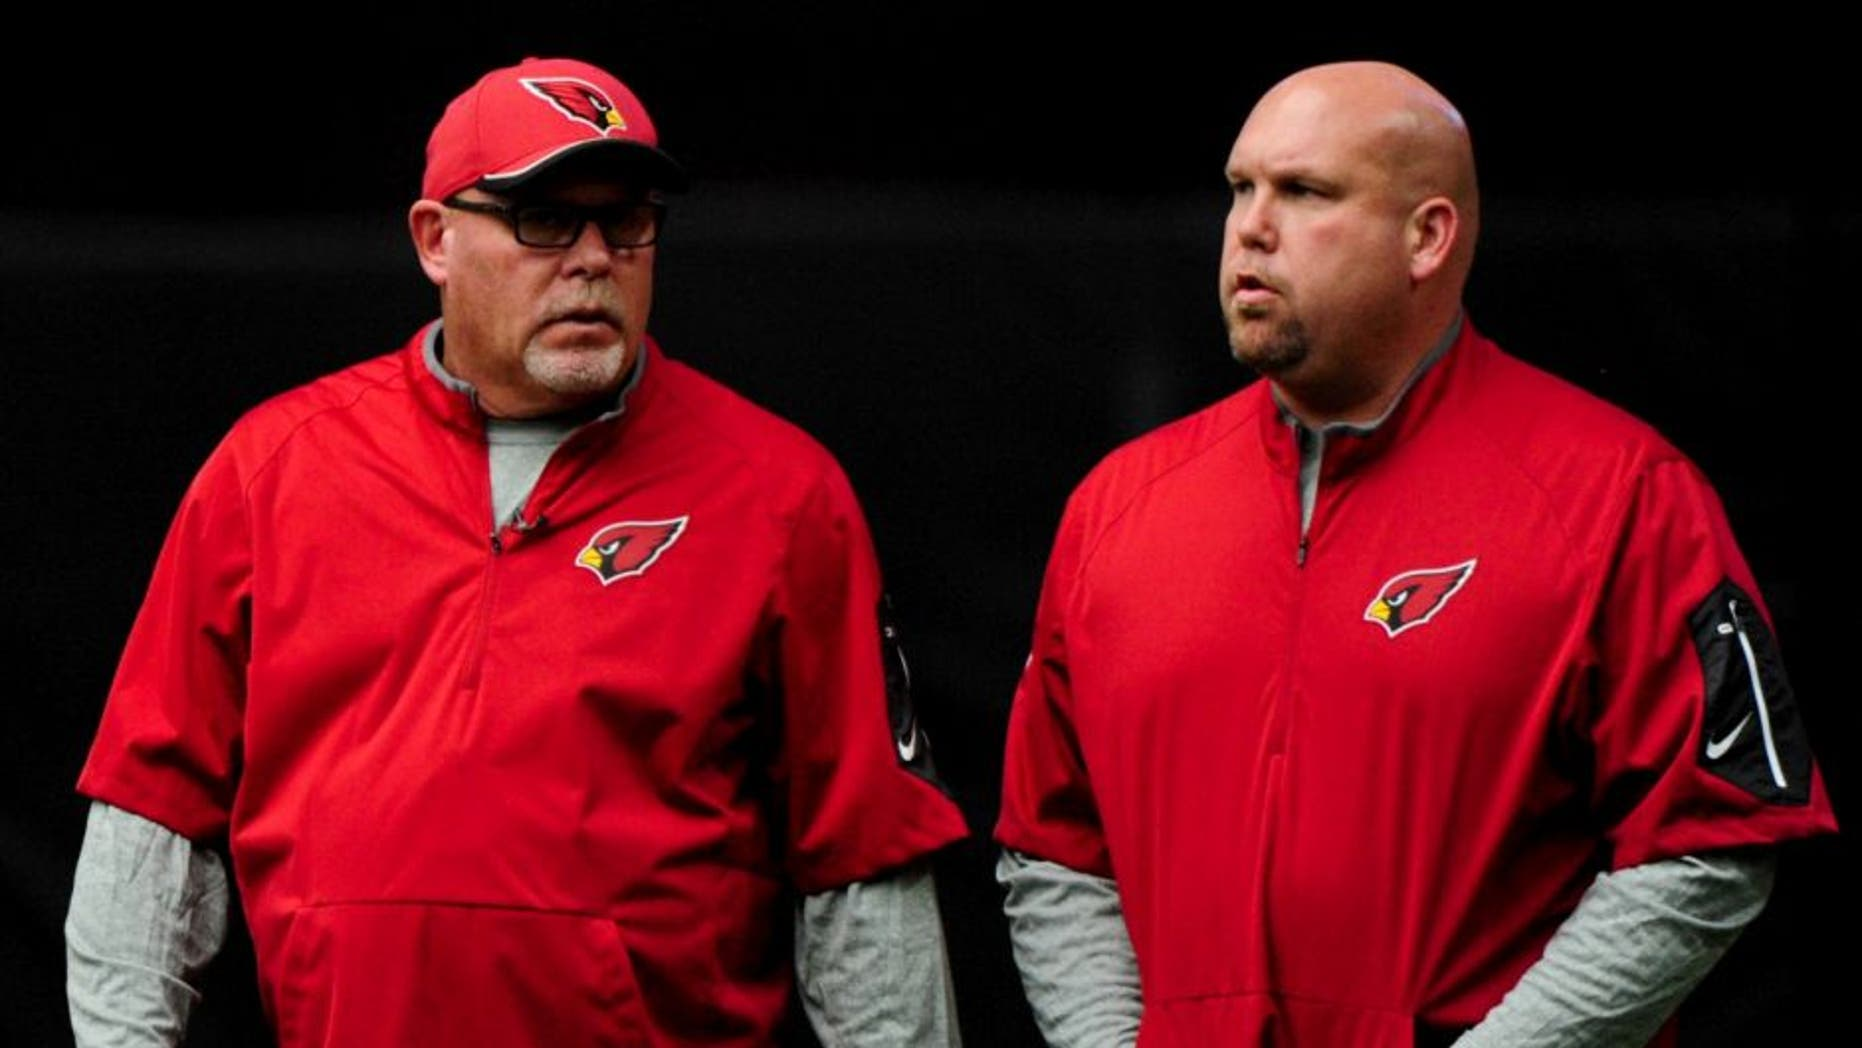 Aug 1, 2015; Glendale, AZ, USA; Arizona Cardinals head coach Bruce Arians and General Manager Steve Keim look on during training camp at University of Phoenix. Mandatory Credit: Matt Kartozian-USA TODAY Sports